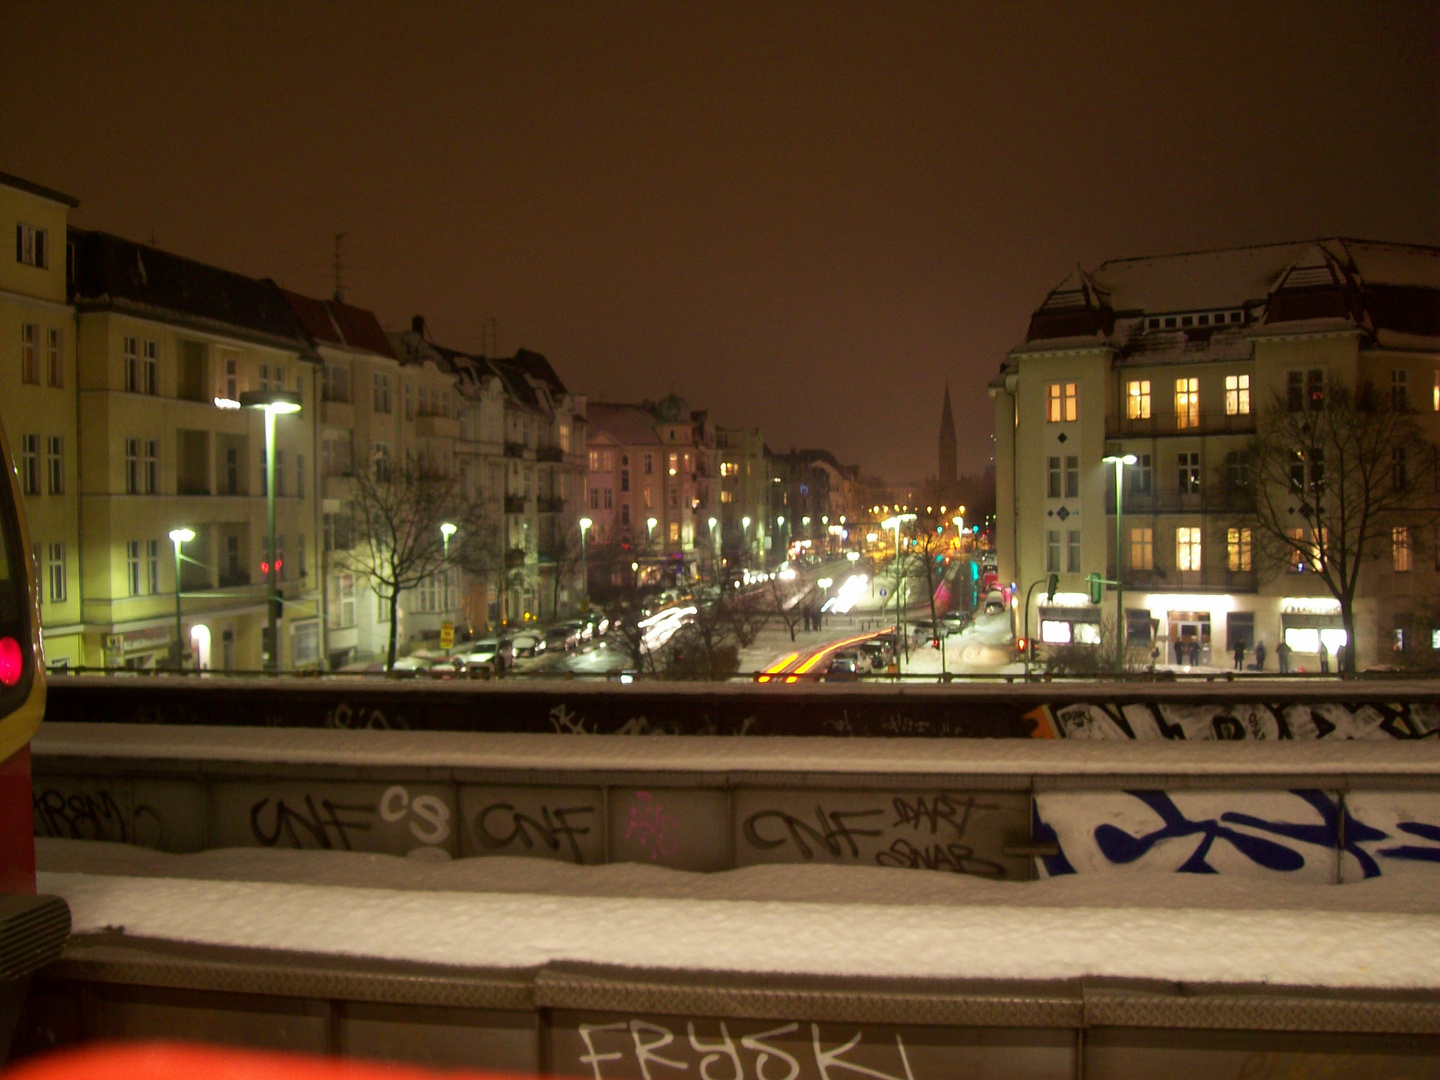 Urban Berlin - Blindet by the lights.